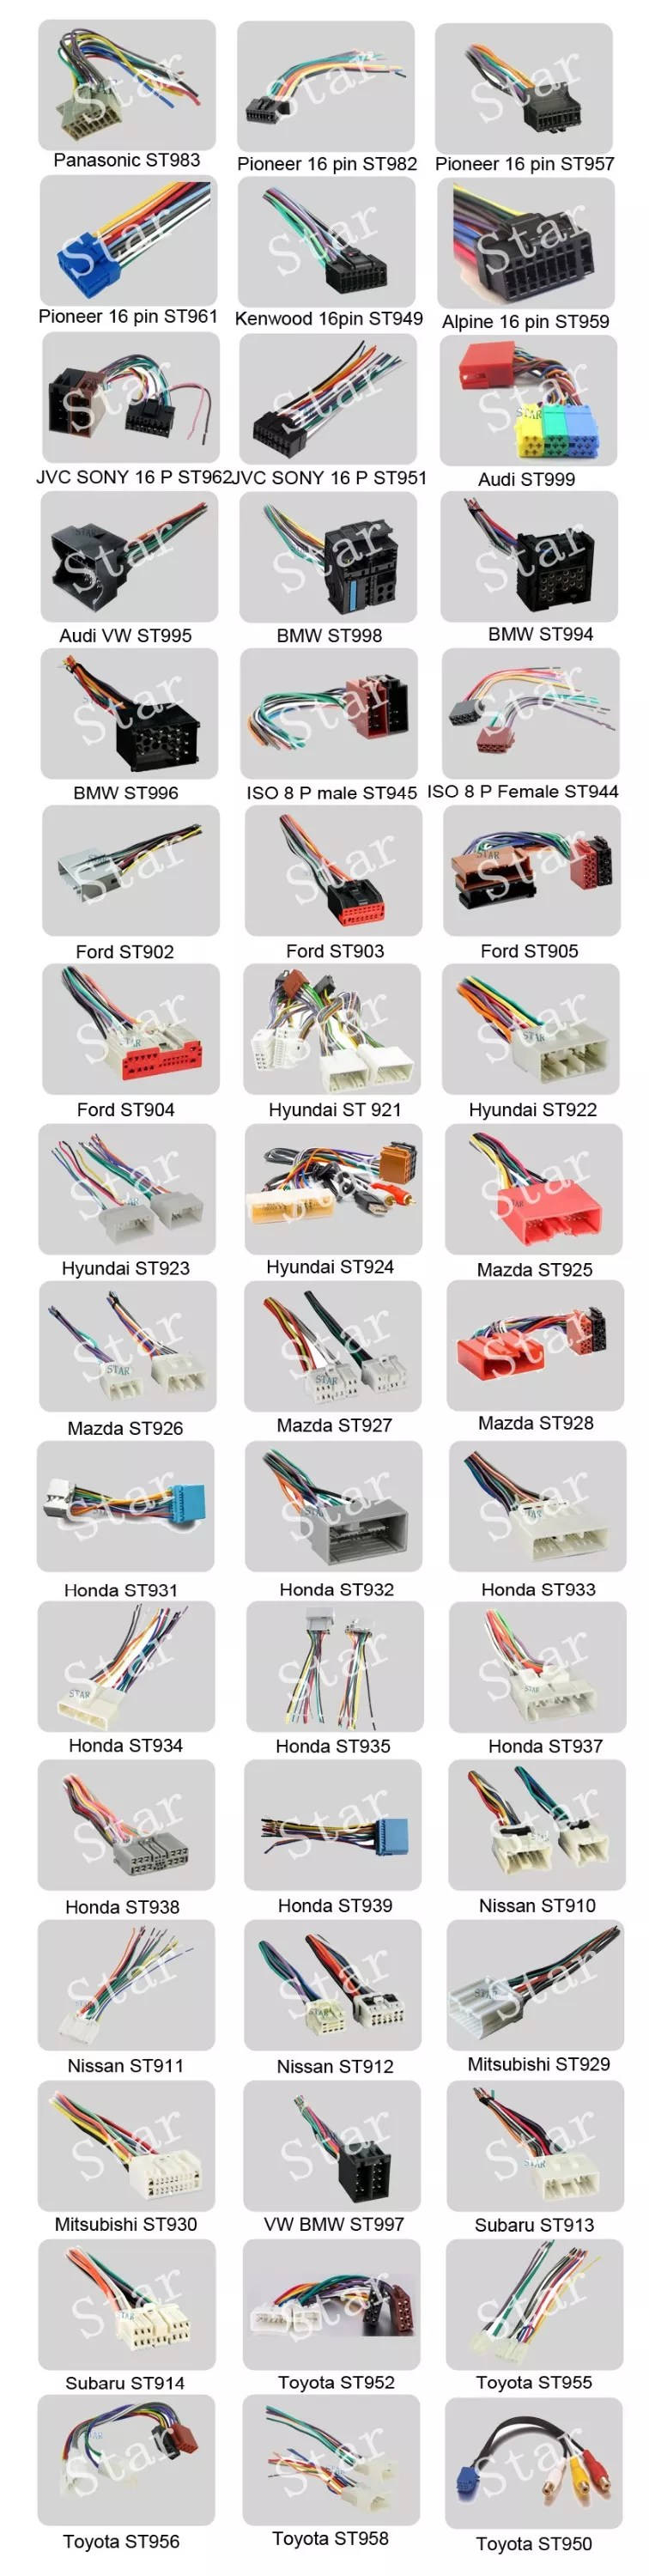 hight resolution of 16 pin pioneer car radio stereo iso wiring harness manufacturer